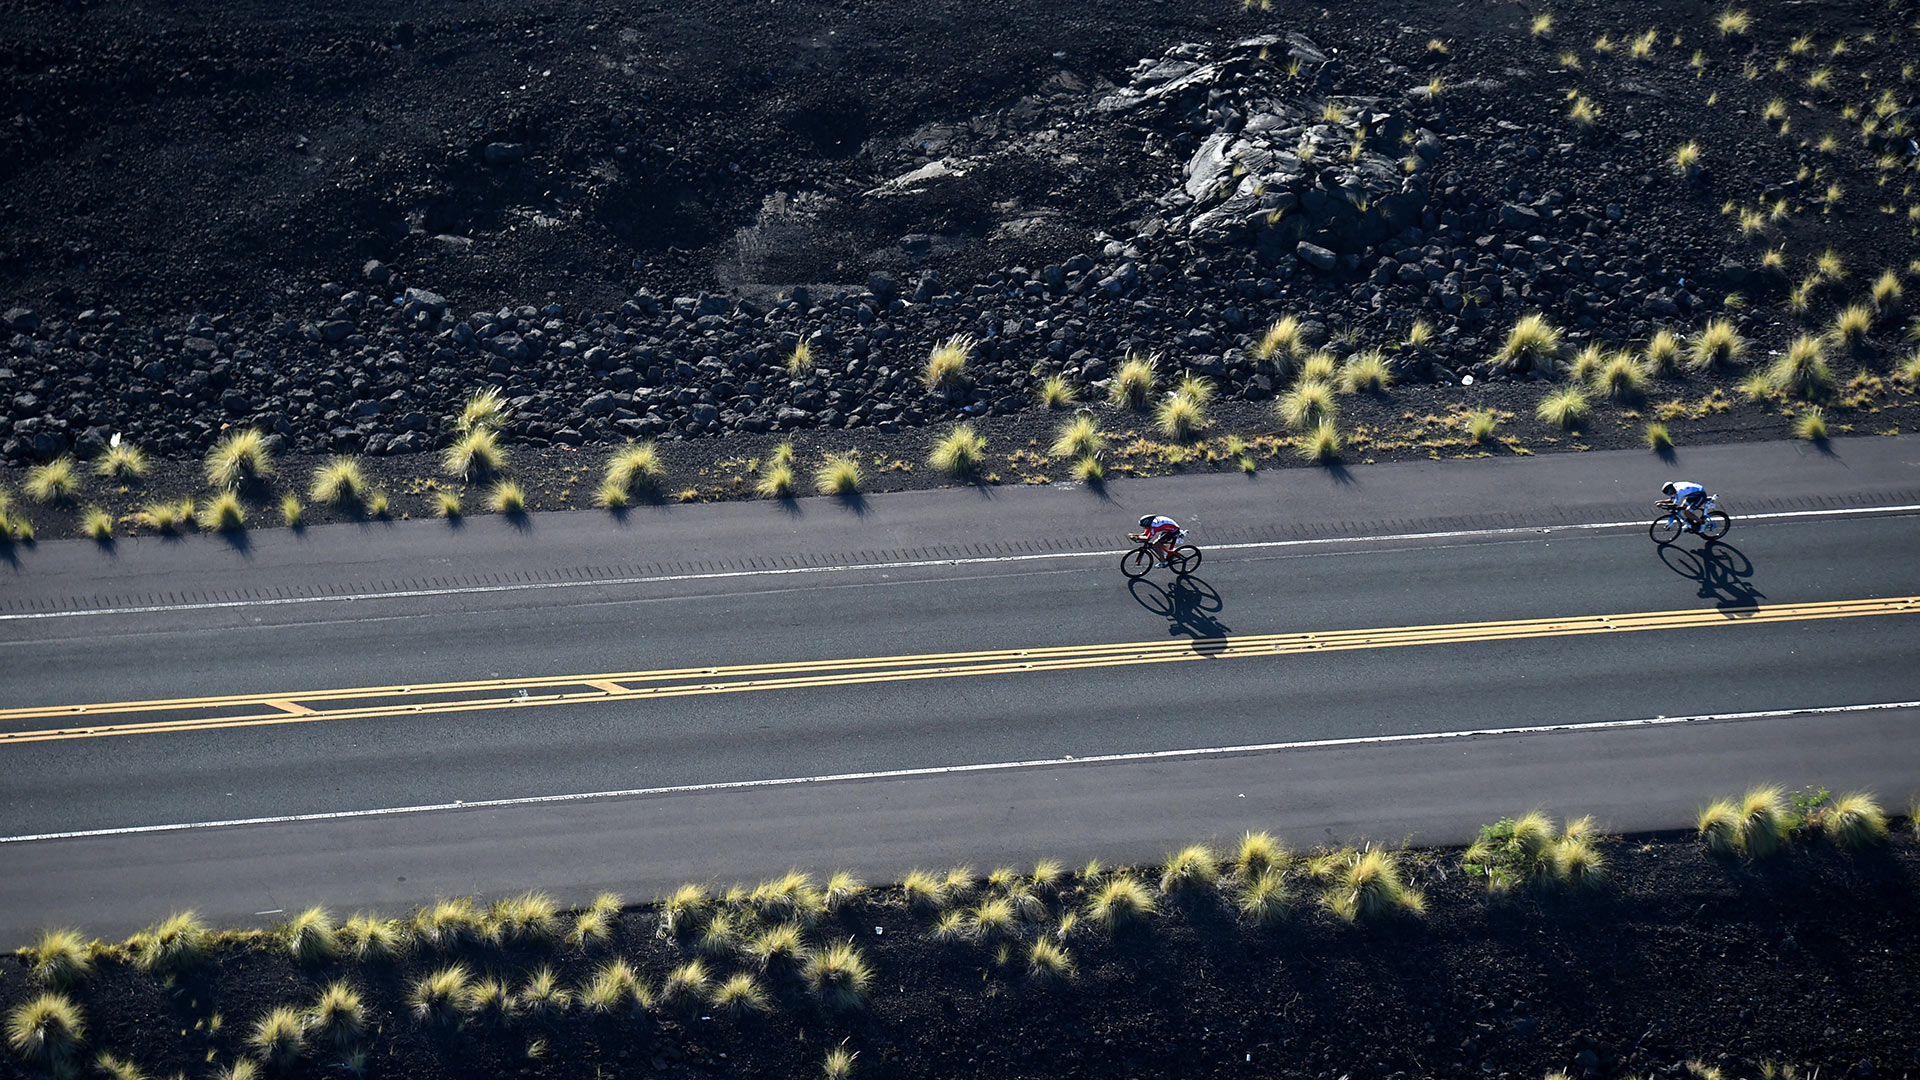 IRONMAN World Championship, Kona, Hawaii